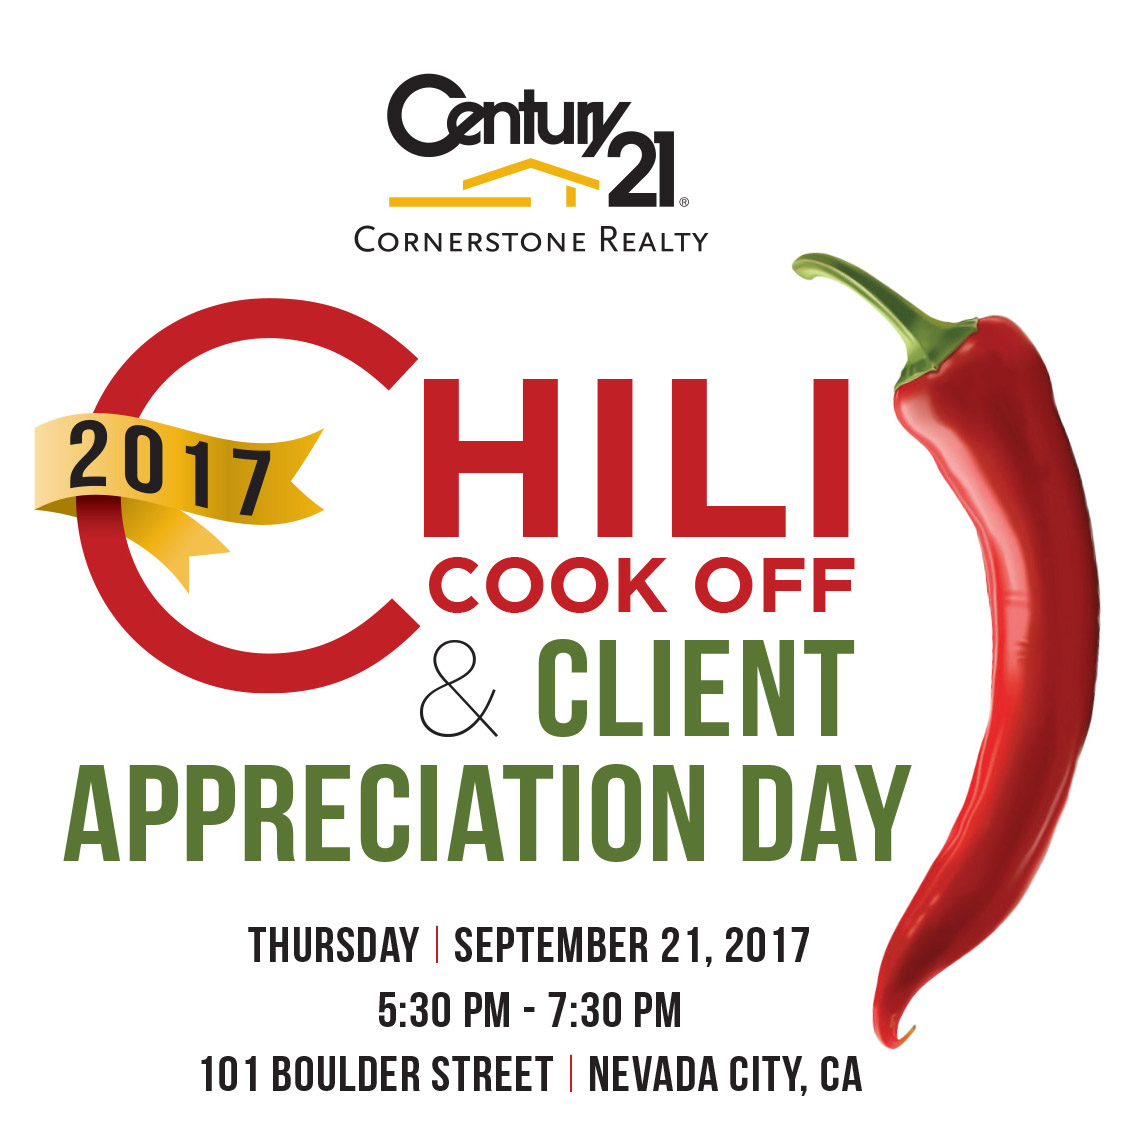 2017 Chili Cook Off & Client Appreciation Day at Century 21 Cornerstone Realty | Nevada City California